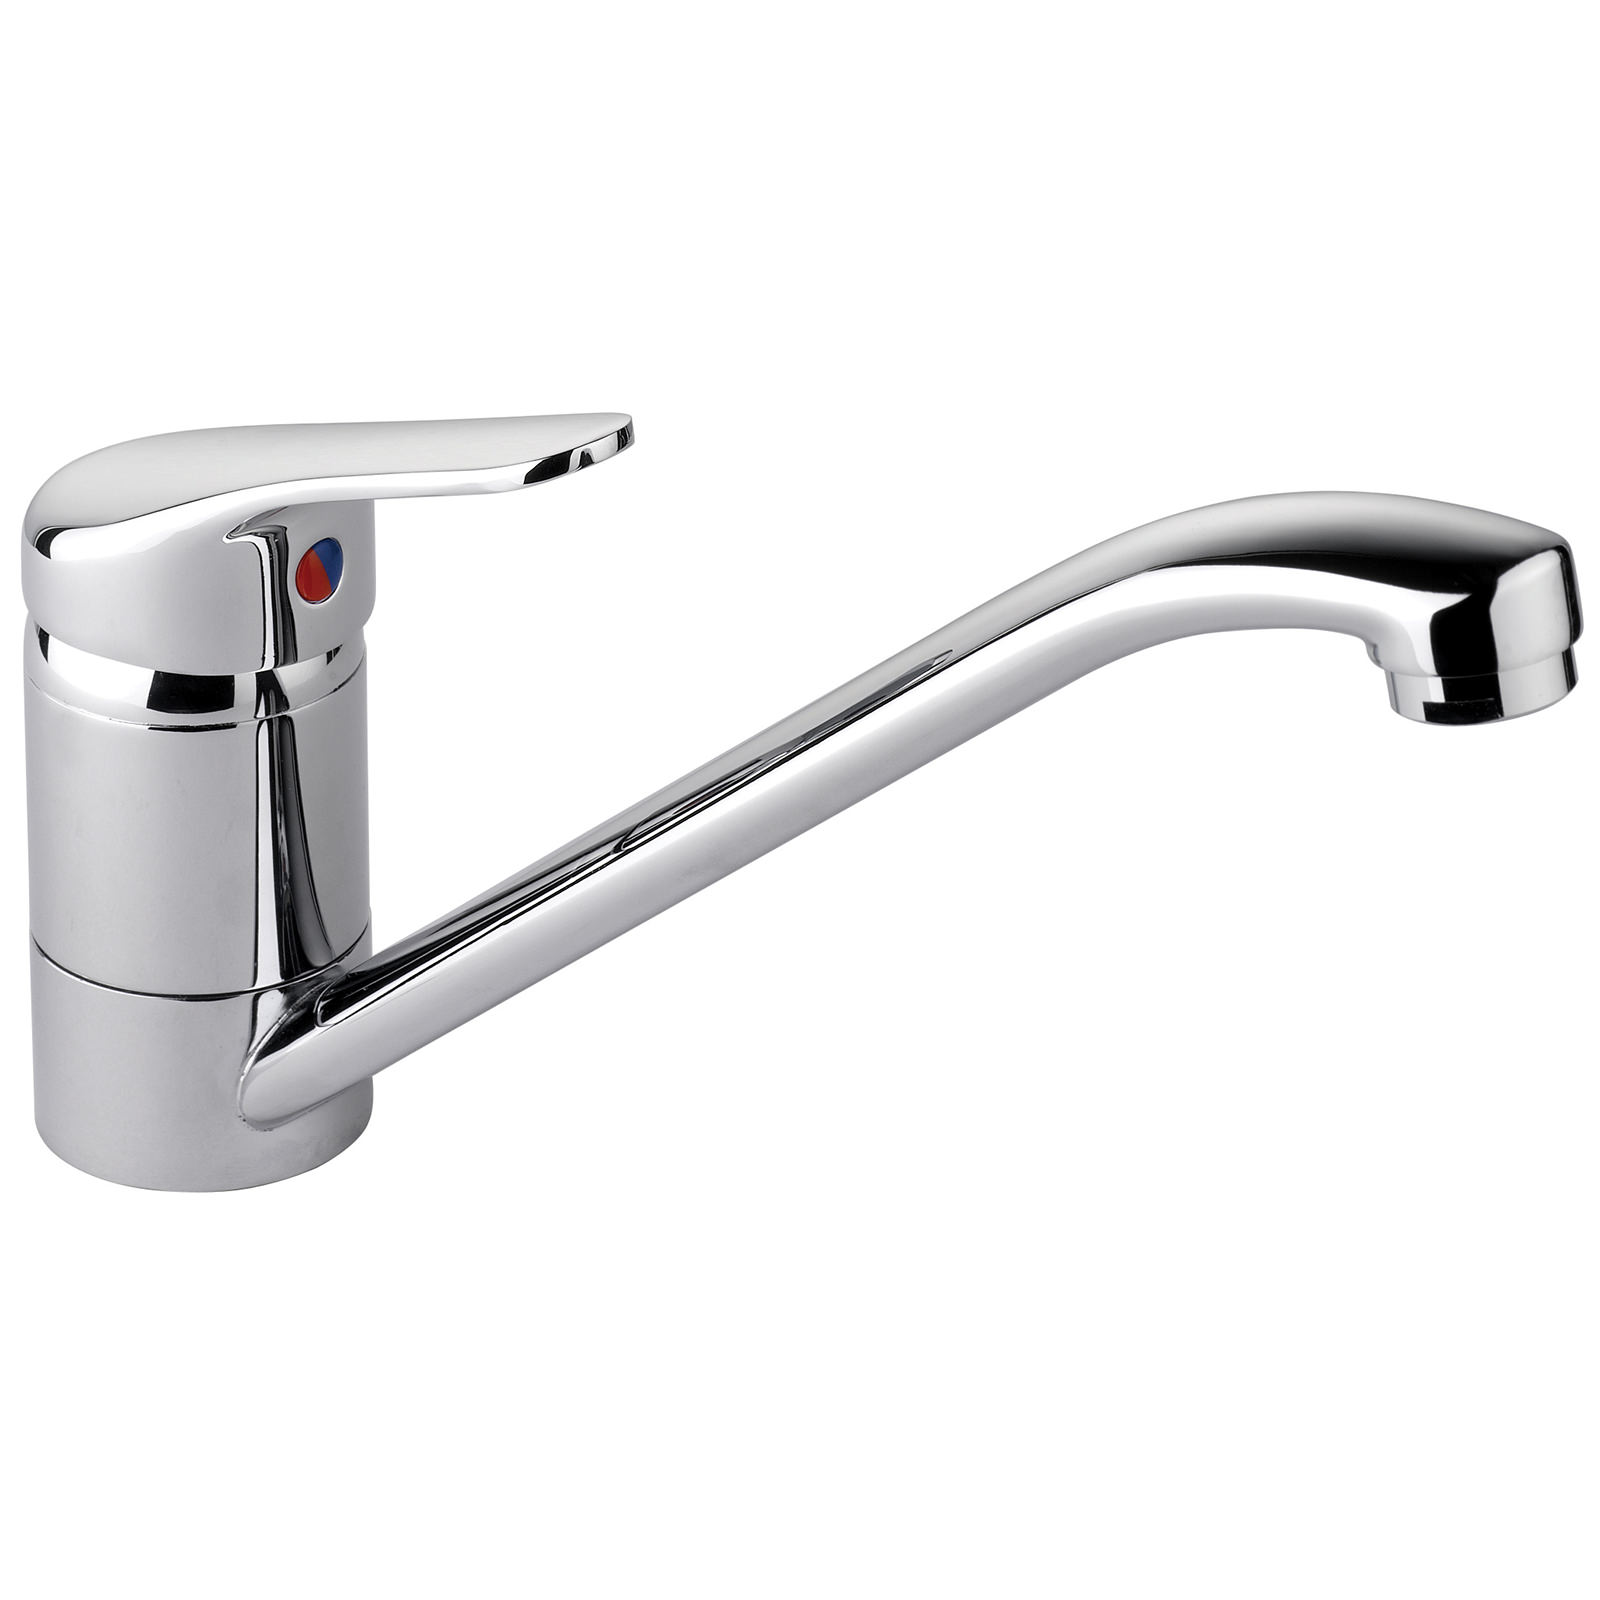 taps for kitchen sinks uk rangemaster aquaflow single lever kitchen sink mixer tap 8437